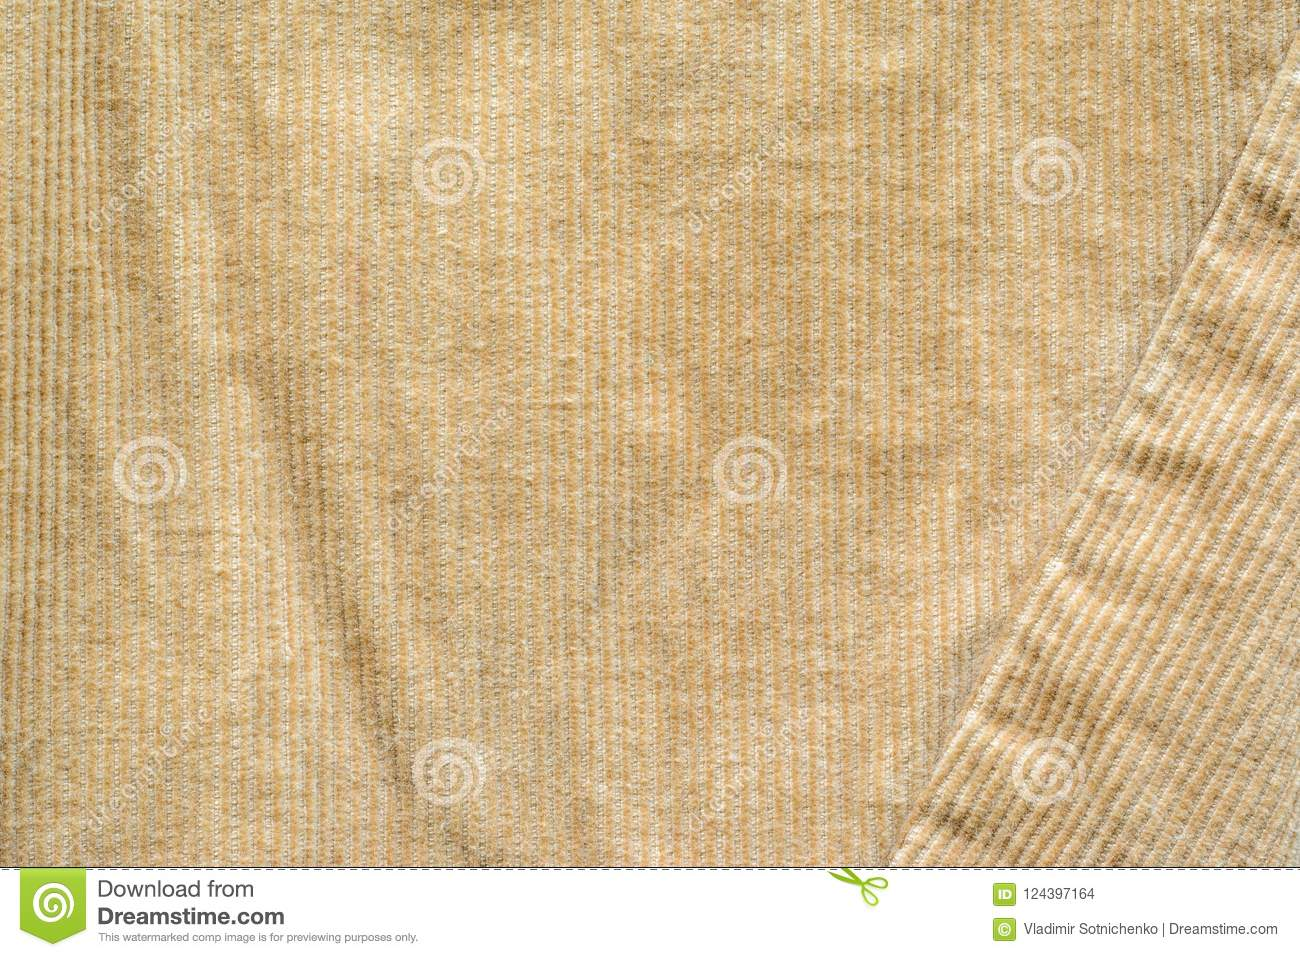 Beige Velvet Cloth Texture With Stitches Stock Photo Image Of Canvas Crumpled 124397164